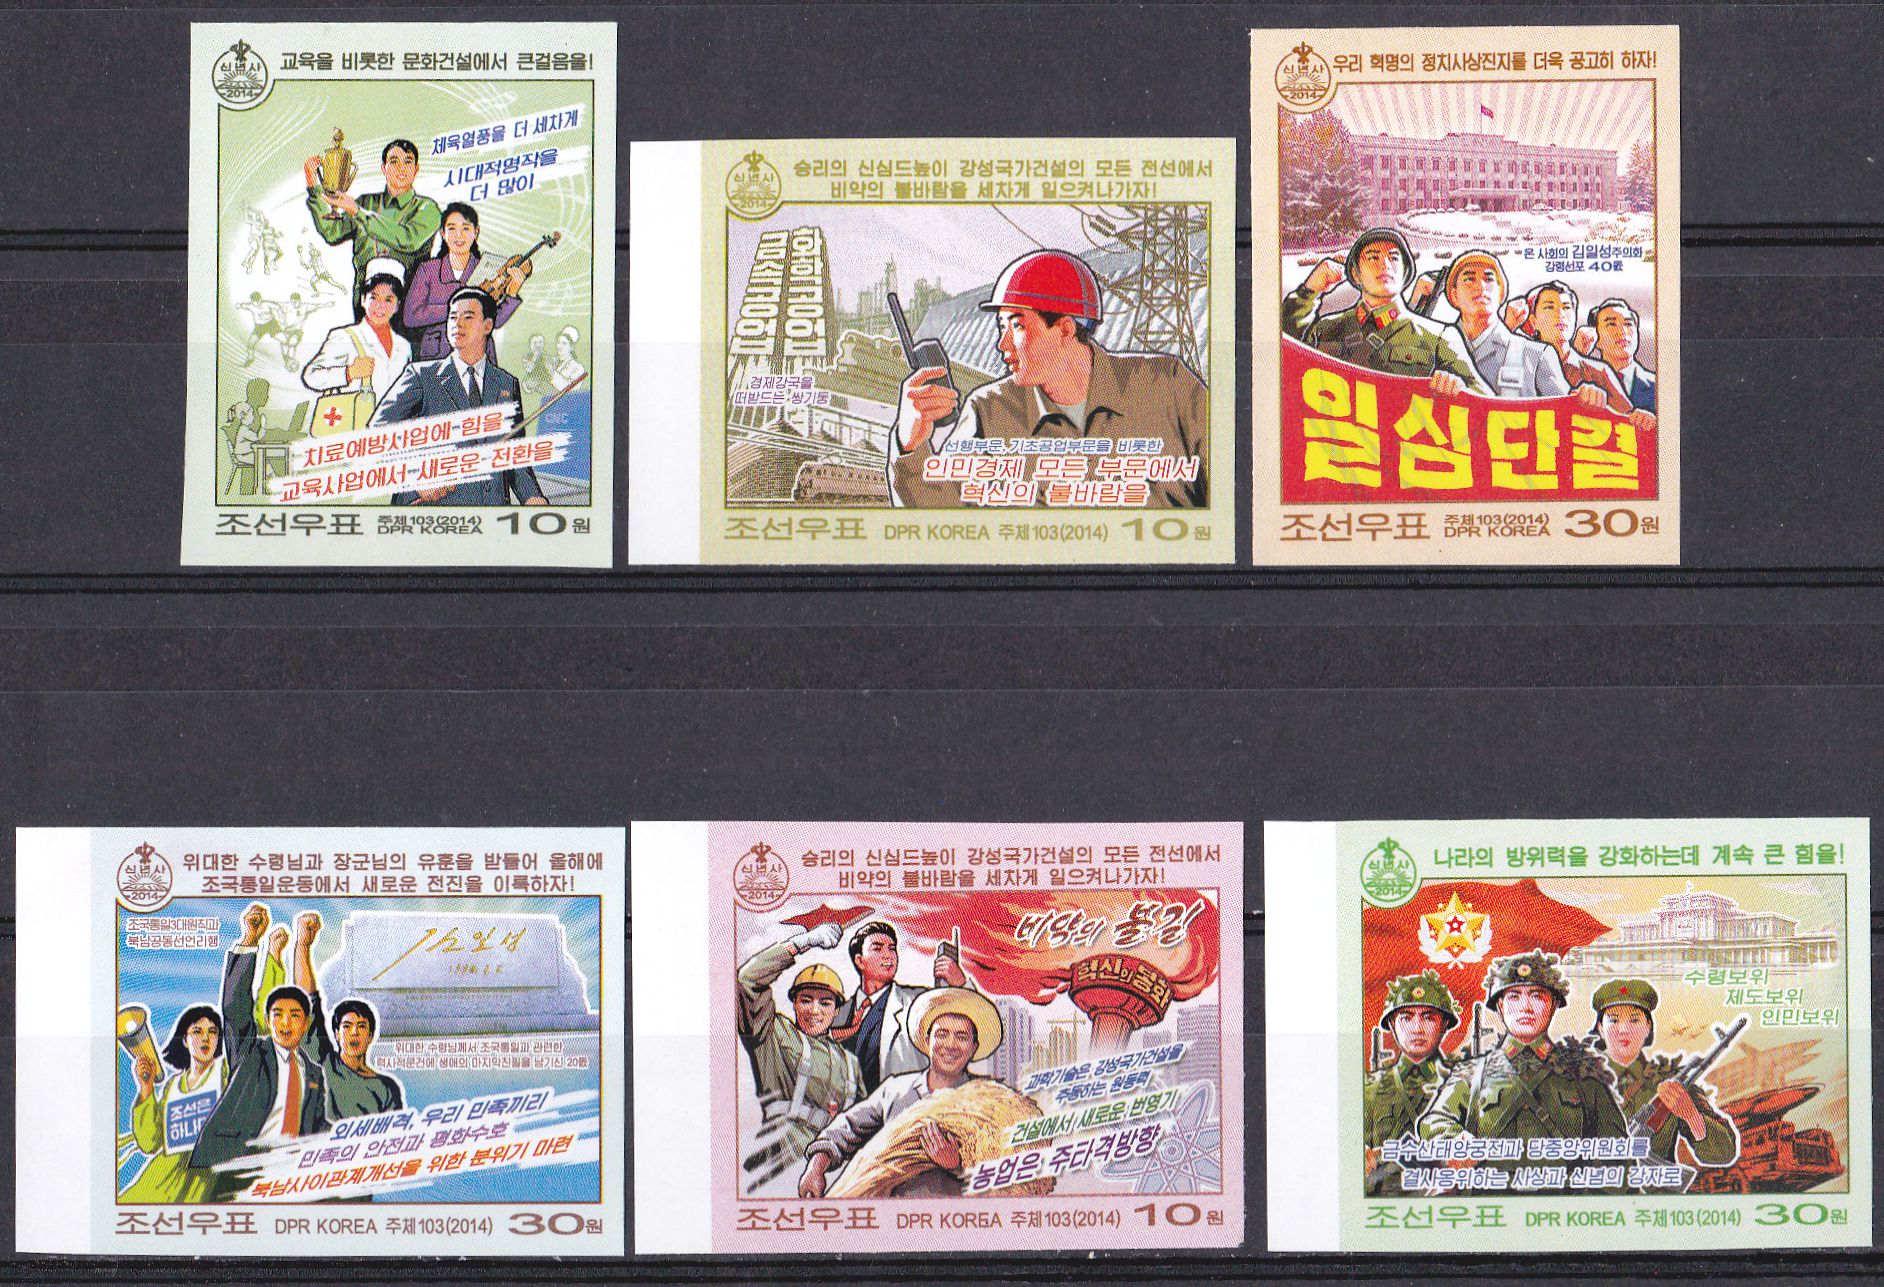 L4366, Korea 2014 New Year Columns, Comunist Post, 6 pcs Imperforate Stamps